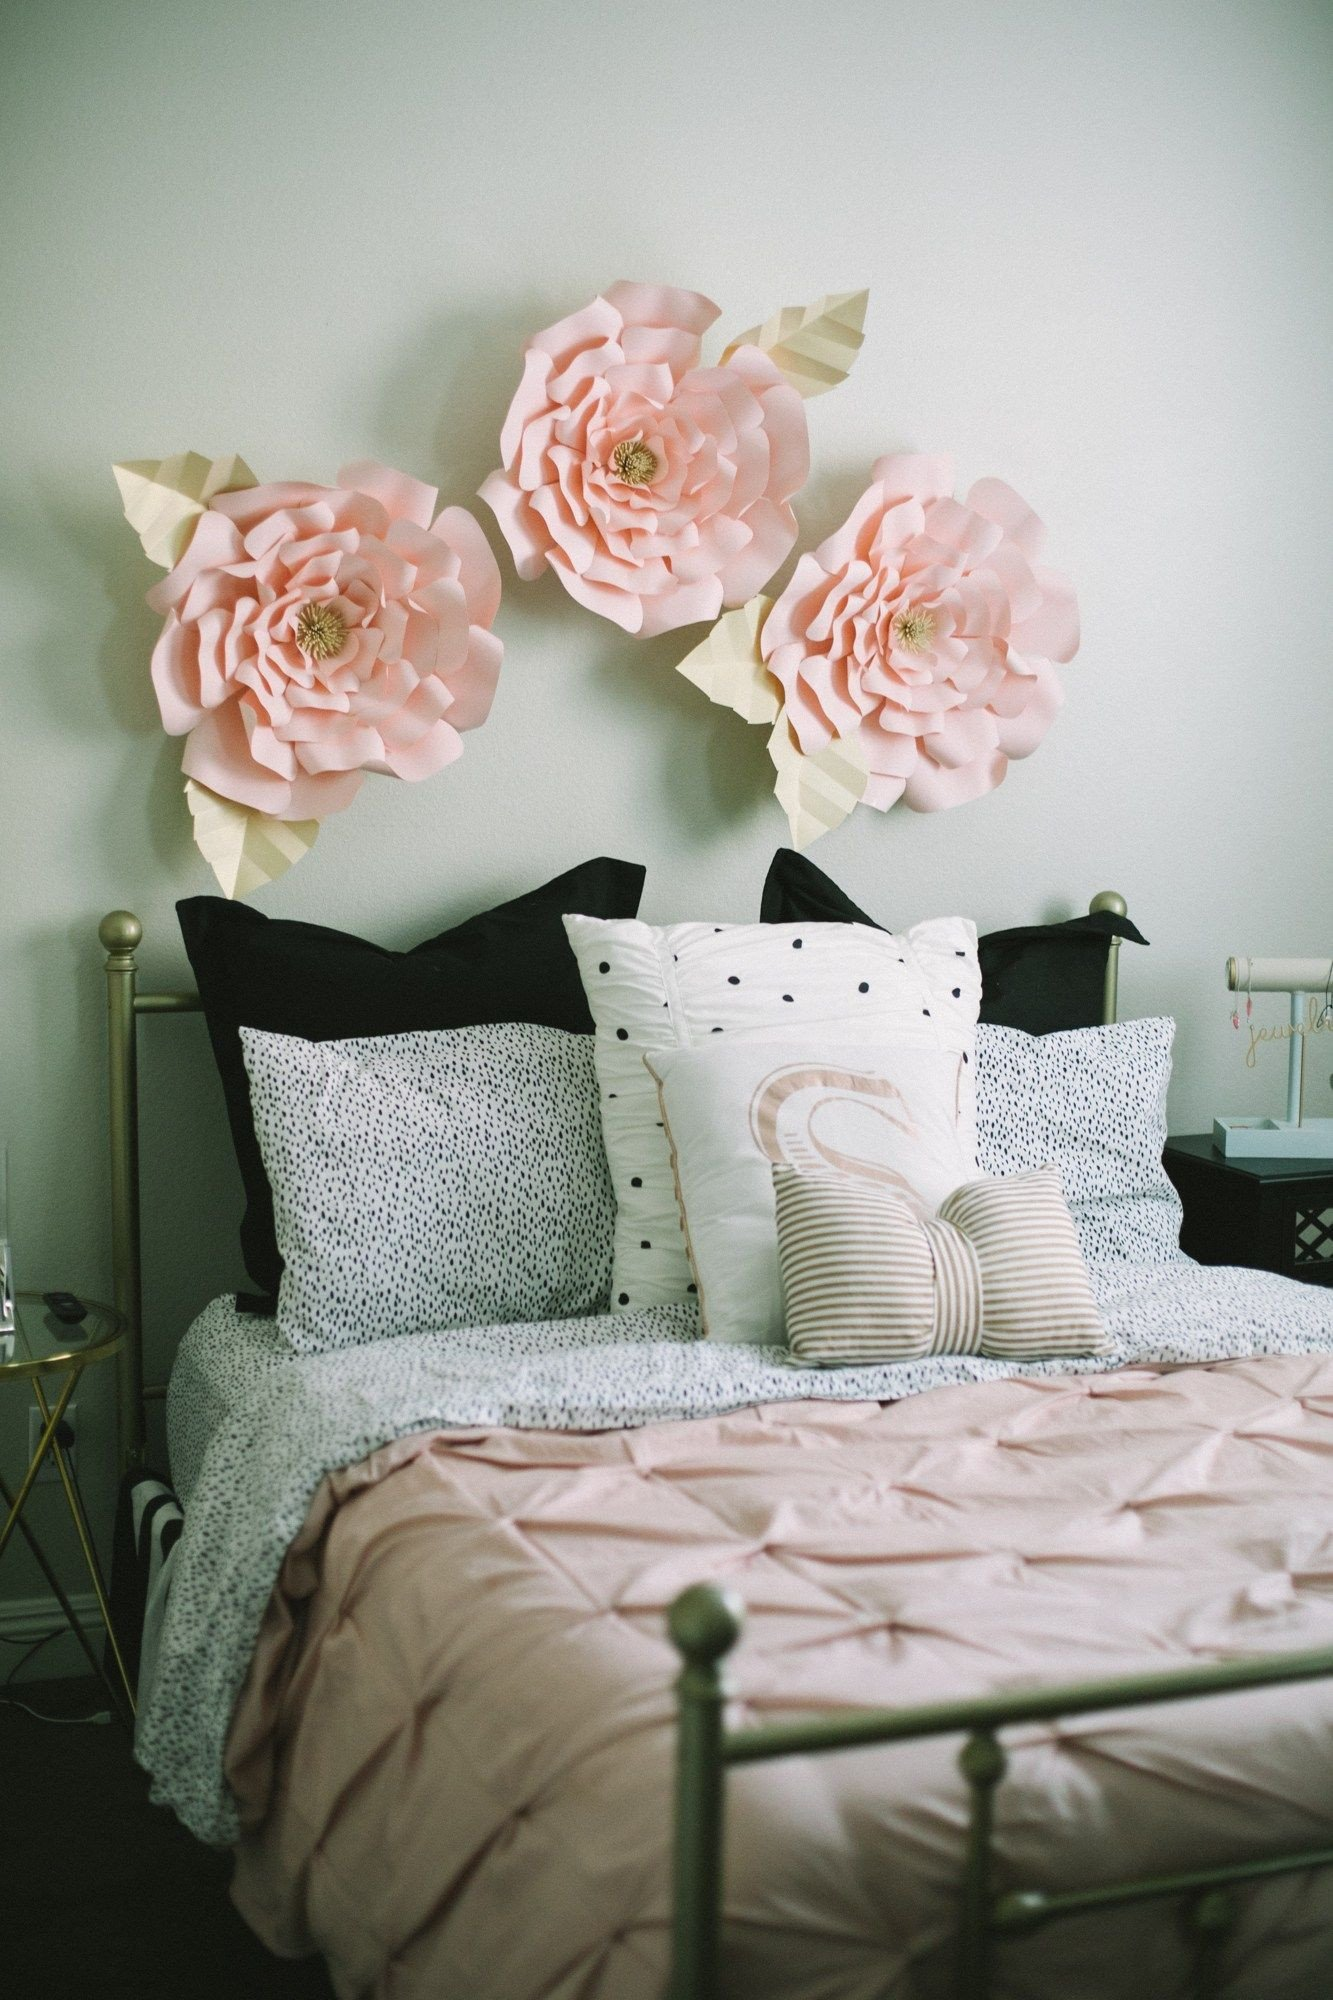 Rose Decorations for Bedroom Luxury Pin On G I R L S R O O M